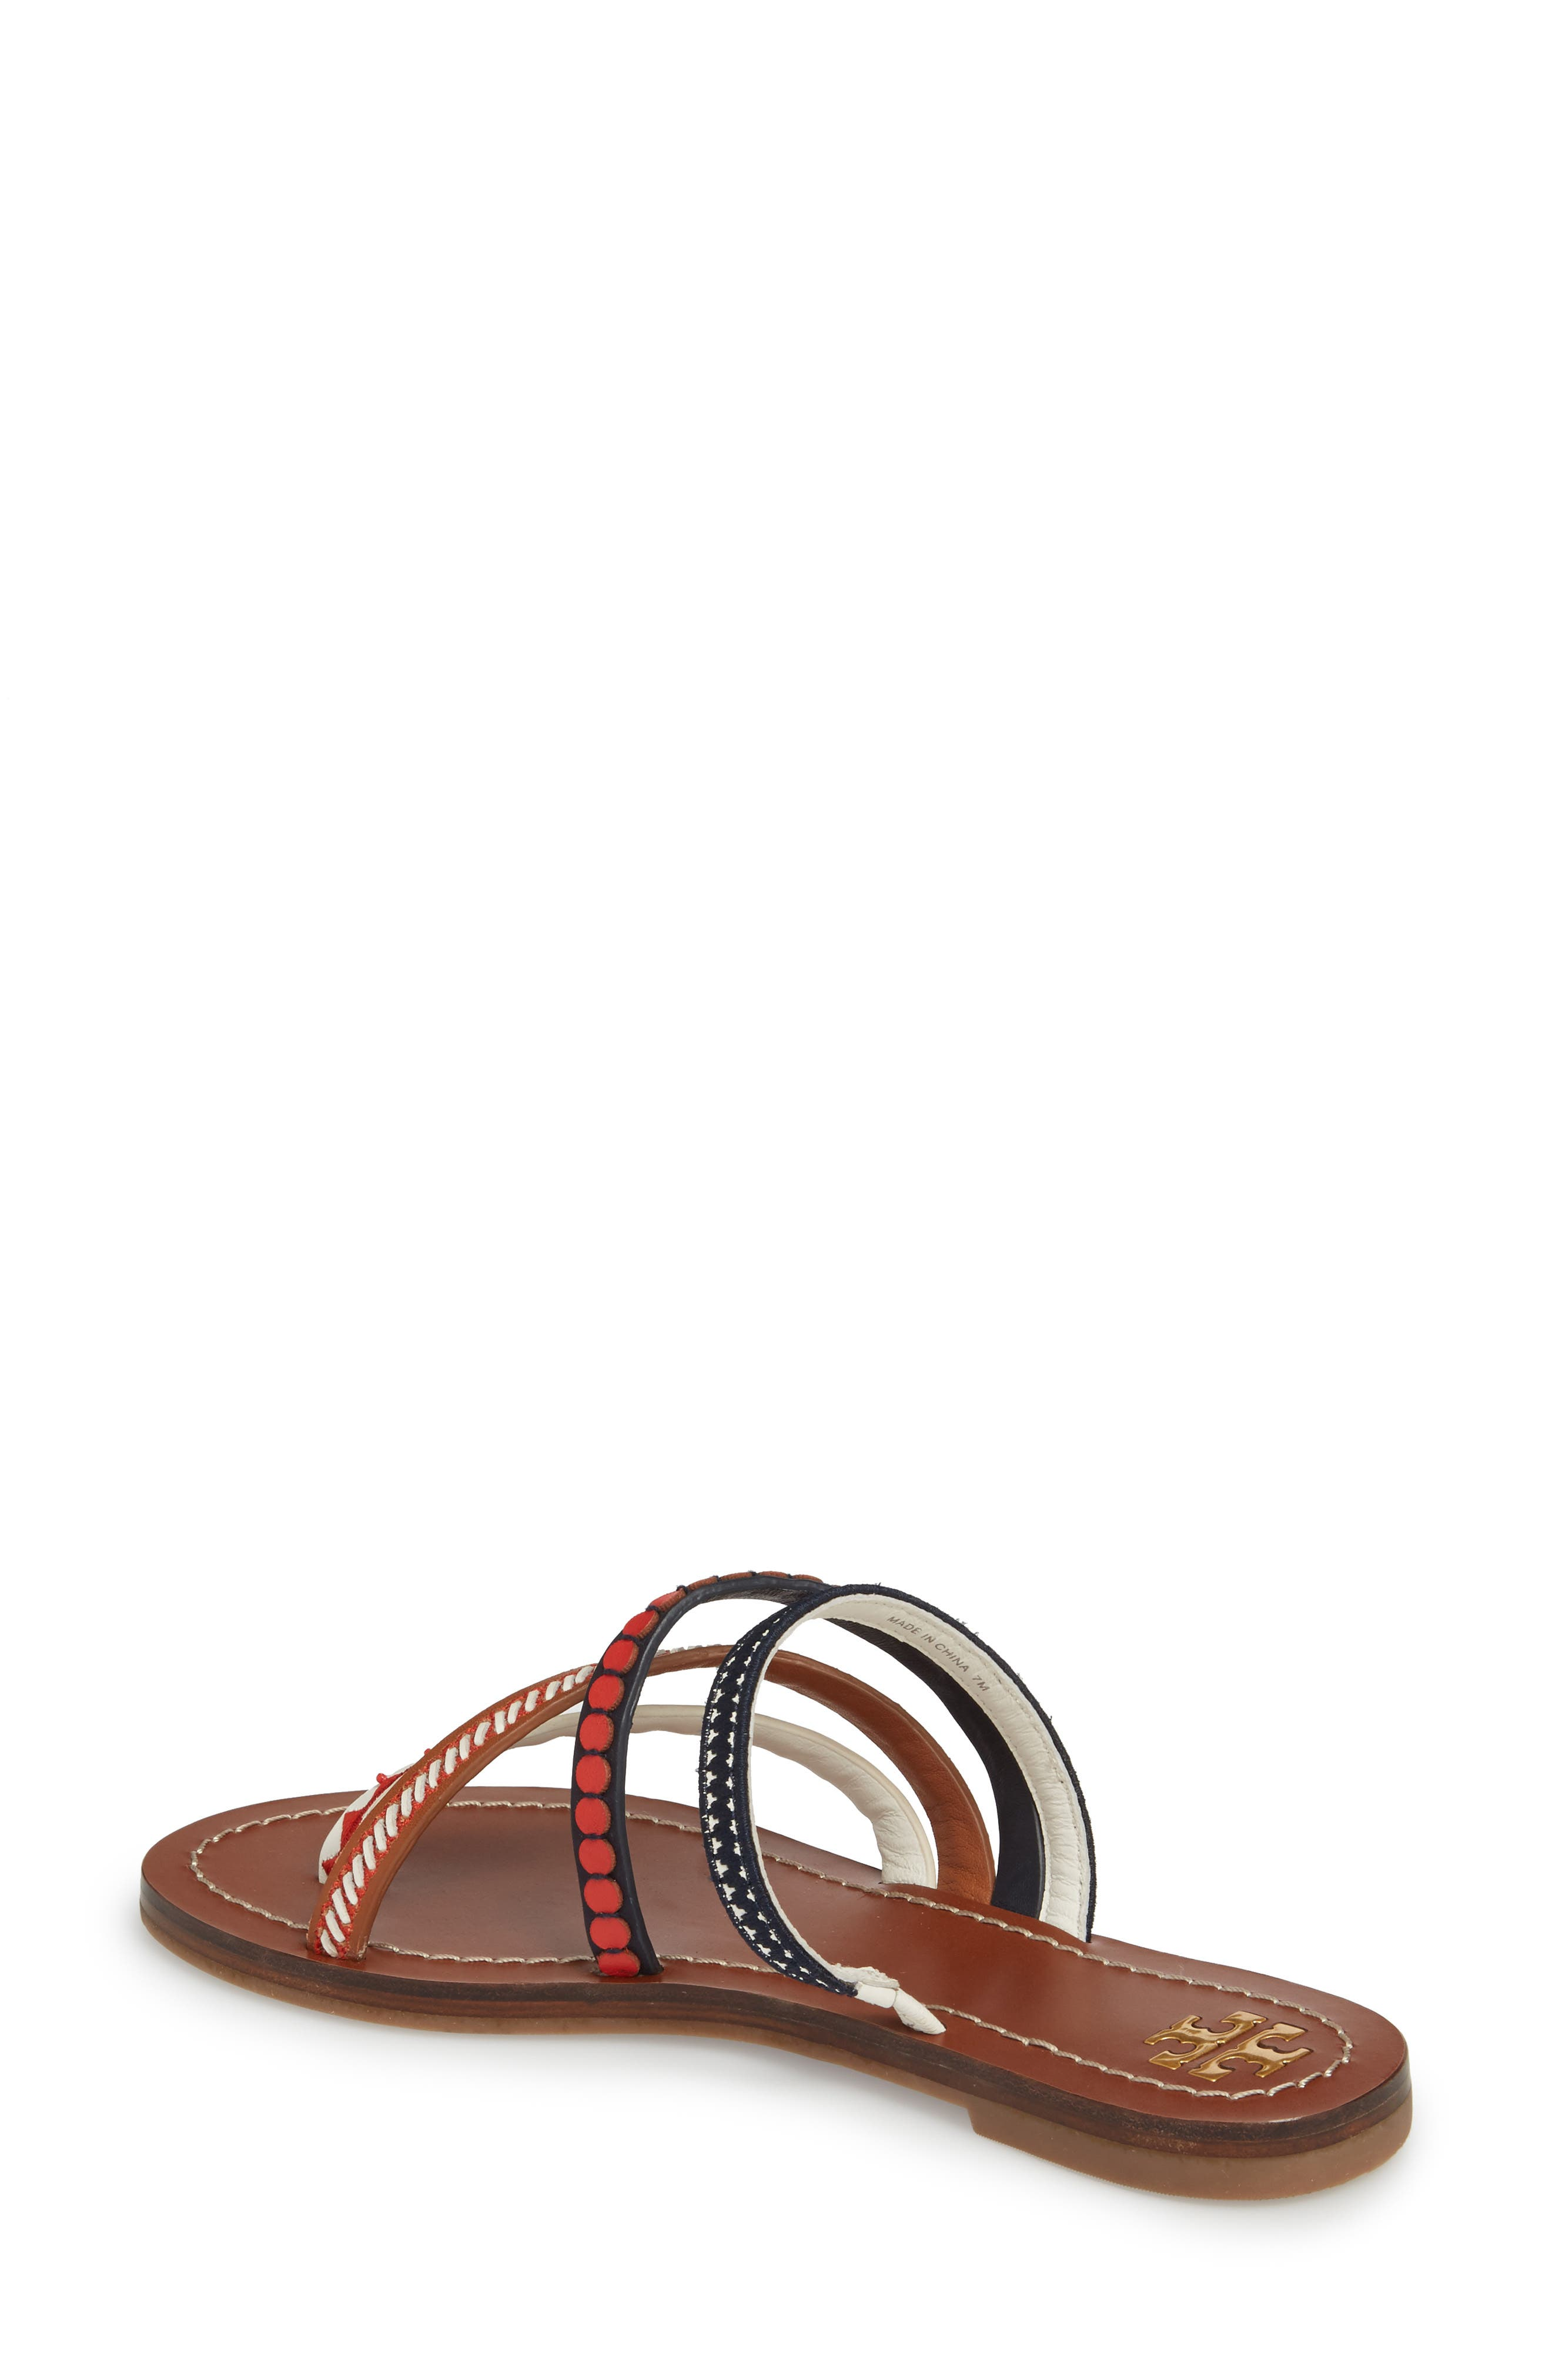 Patos Embroidered Thong Sandal,                             Alternate thumbnail 2, color,                             PERFECT CUOIO/ MULTI MUTLI